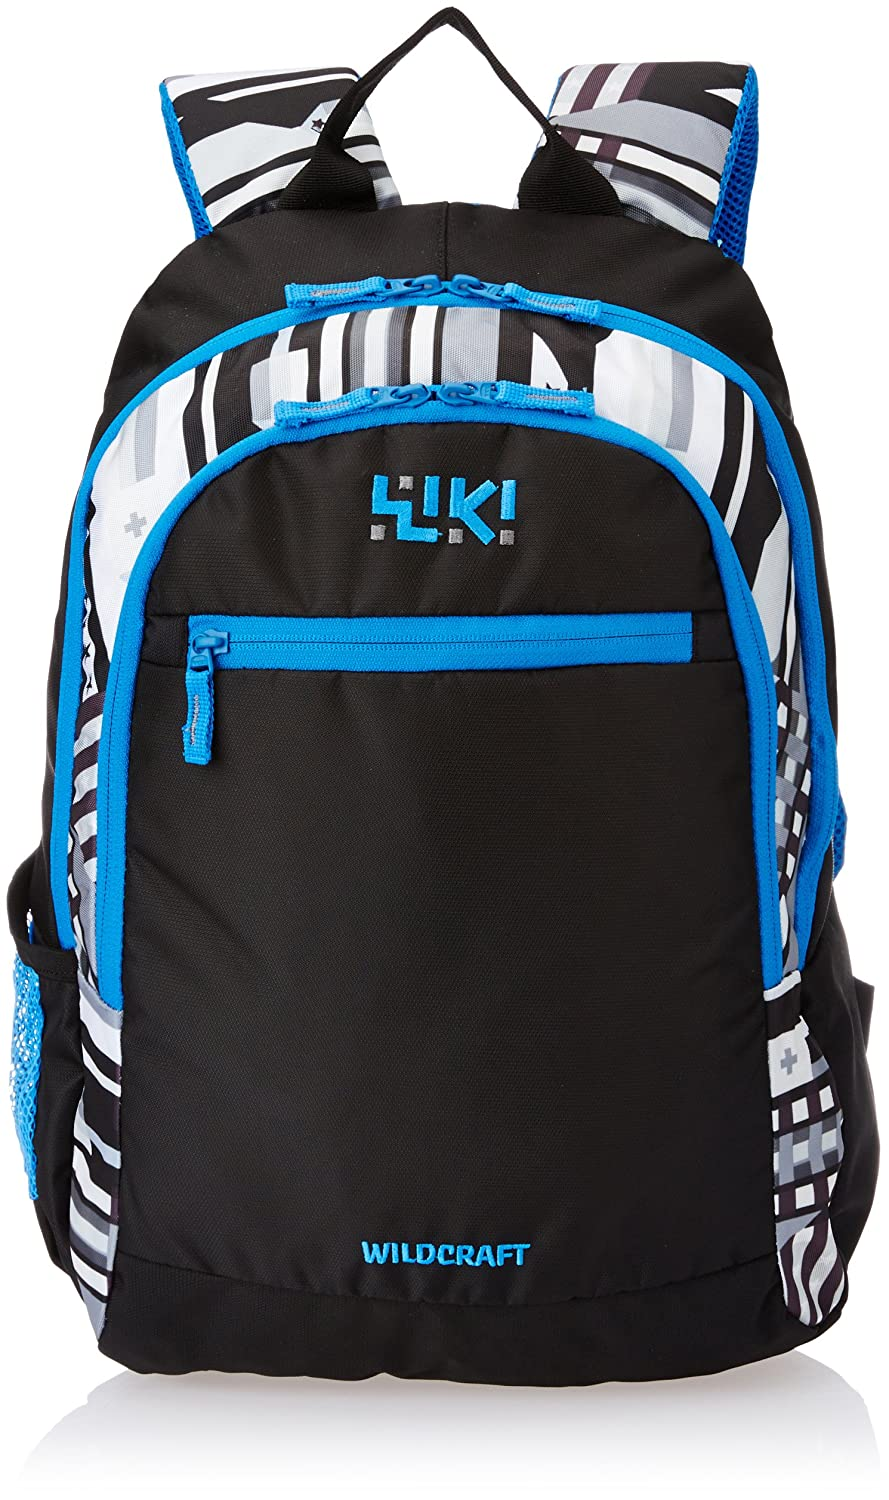 Wildcraft 27 ltrs Black Casual Backpack (8903338054214)